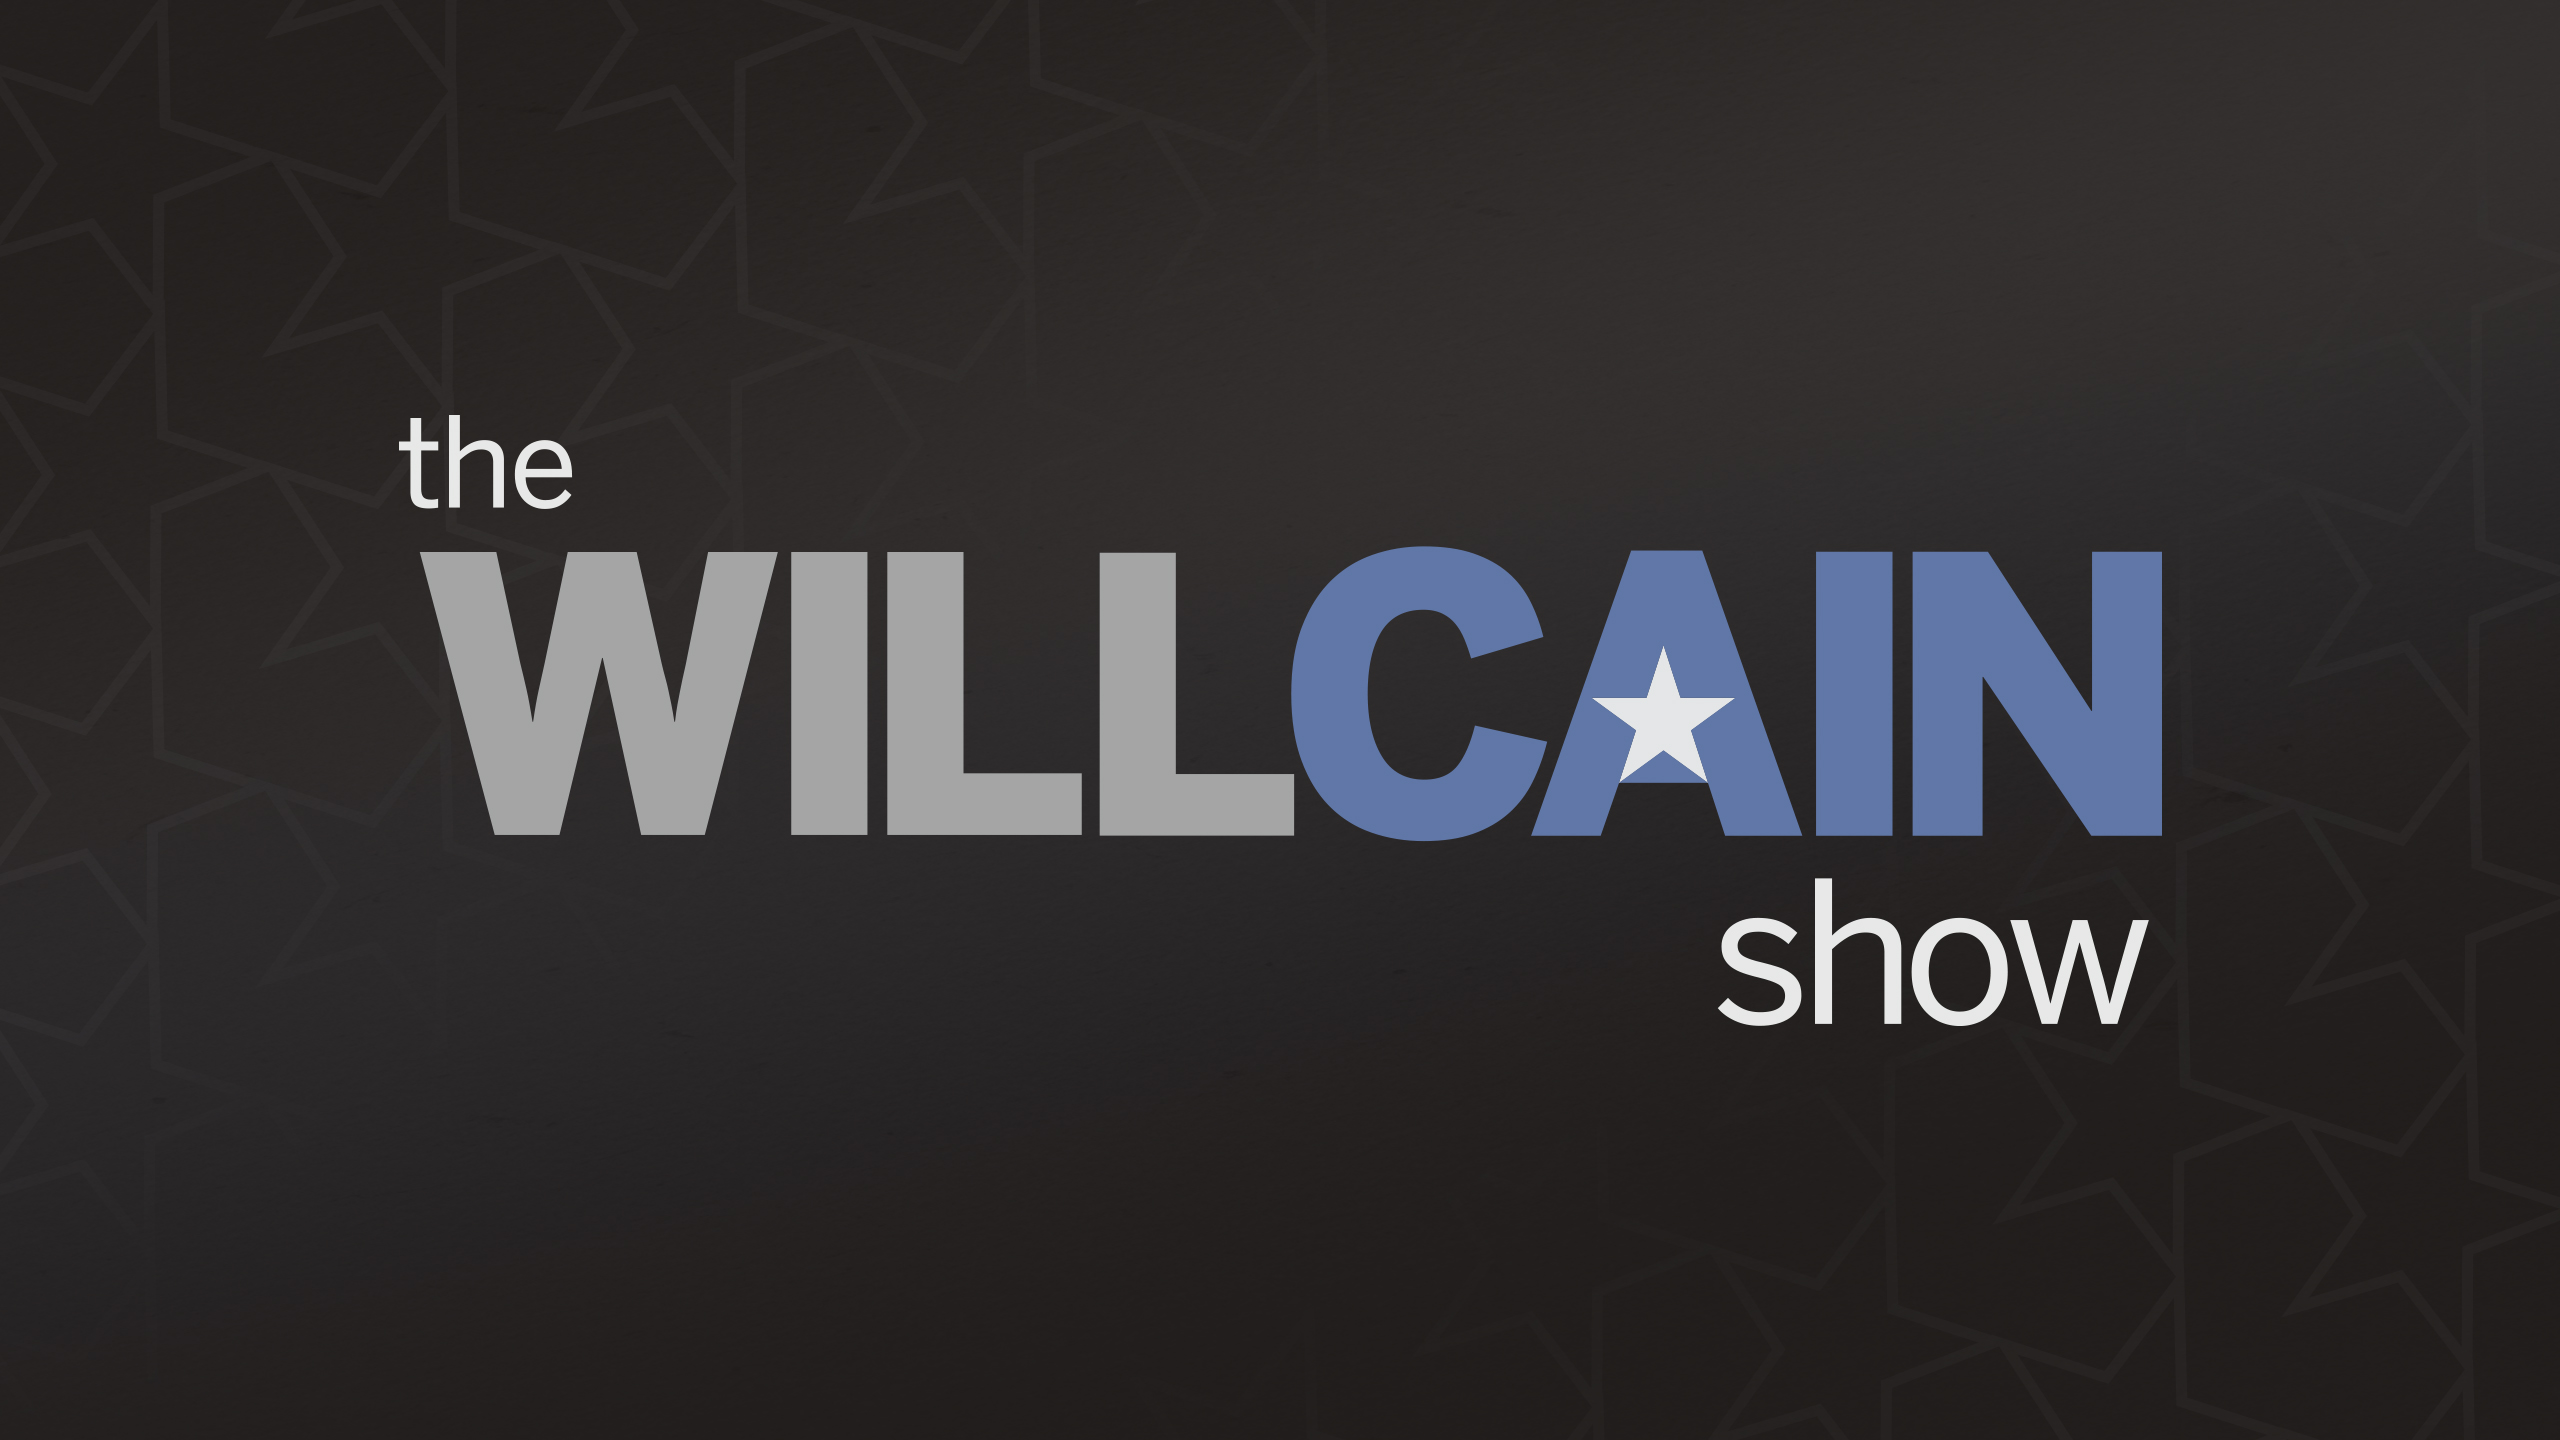 Wed, 2/20 - The Will Cain Show Presented by Progressive